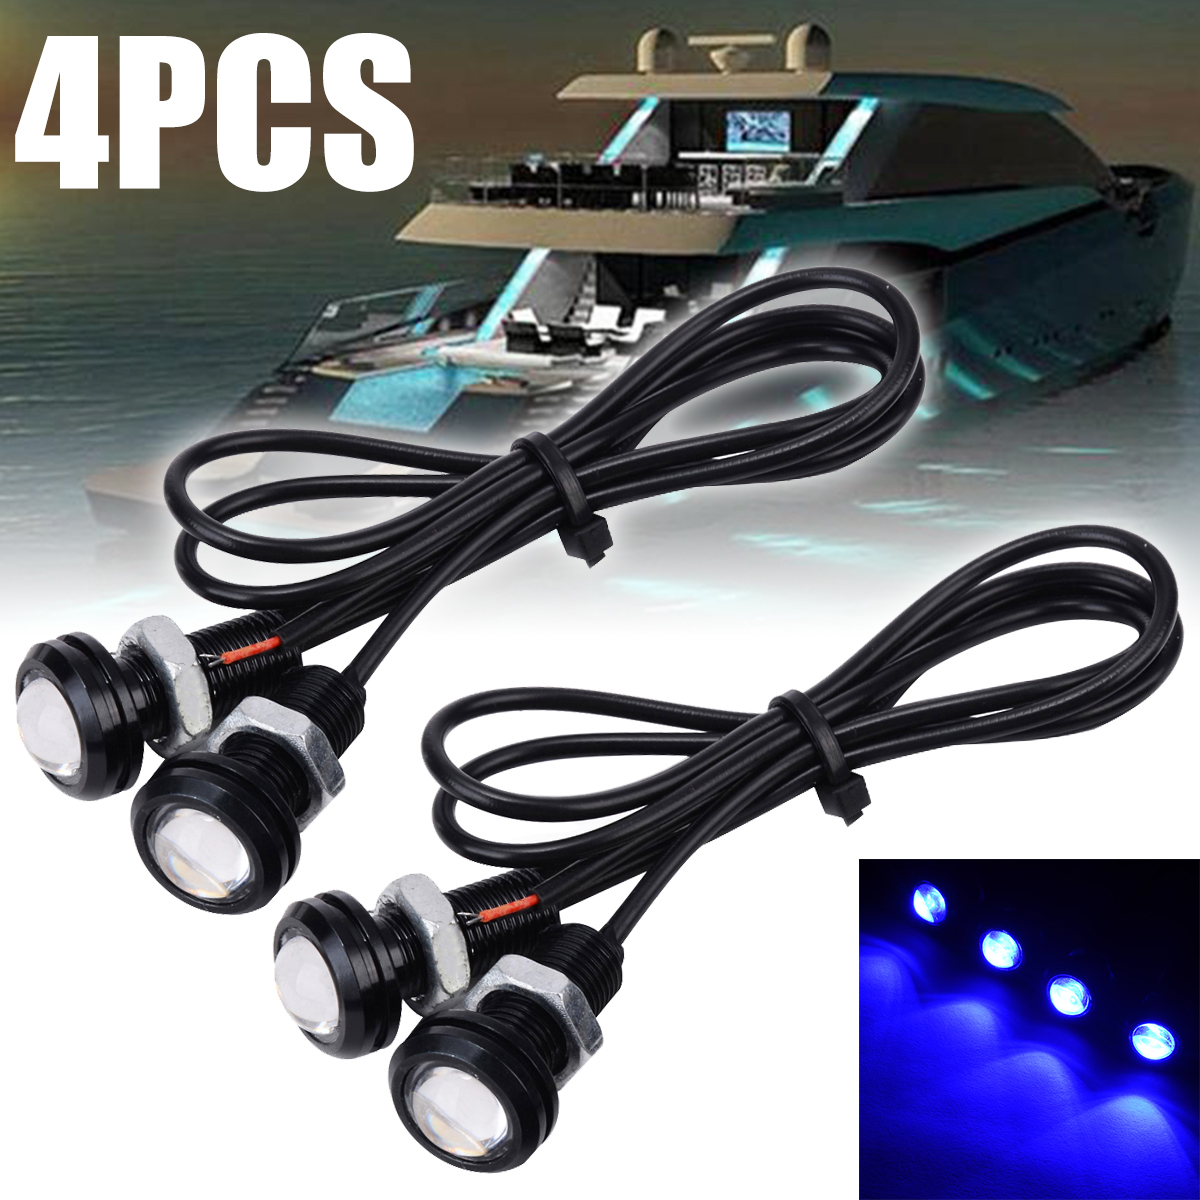 4pcs 12V 10W Blue LED Boat Light Waterproof Outrigger Spreader Transom Under Water Troll Lamp For Marine Underwater Fish